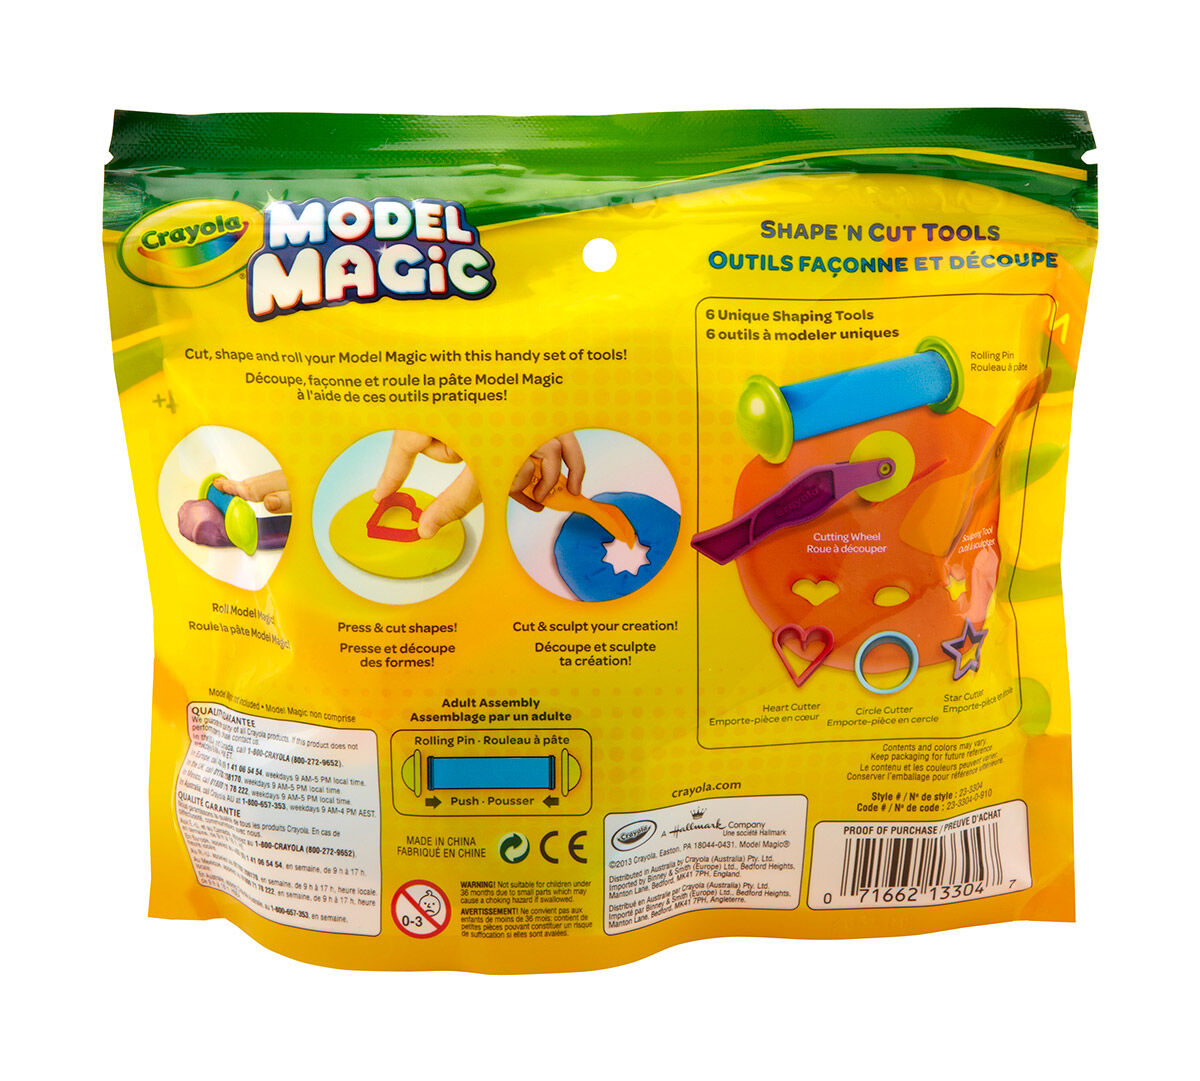 Model Magic Shape N Cut Tools Crayola